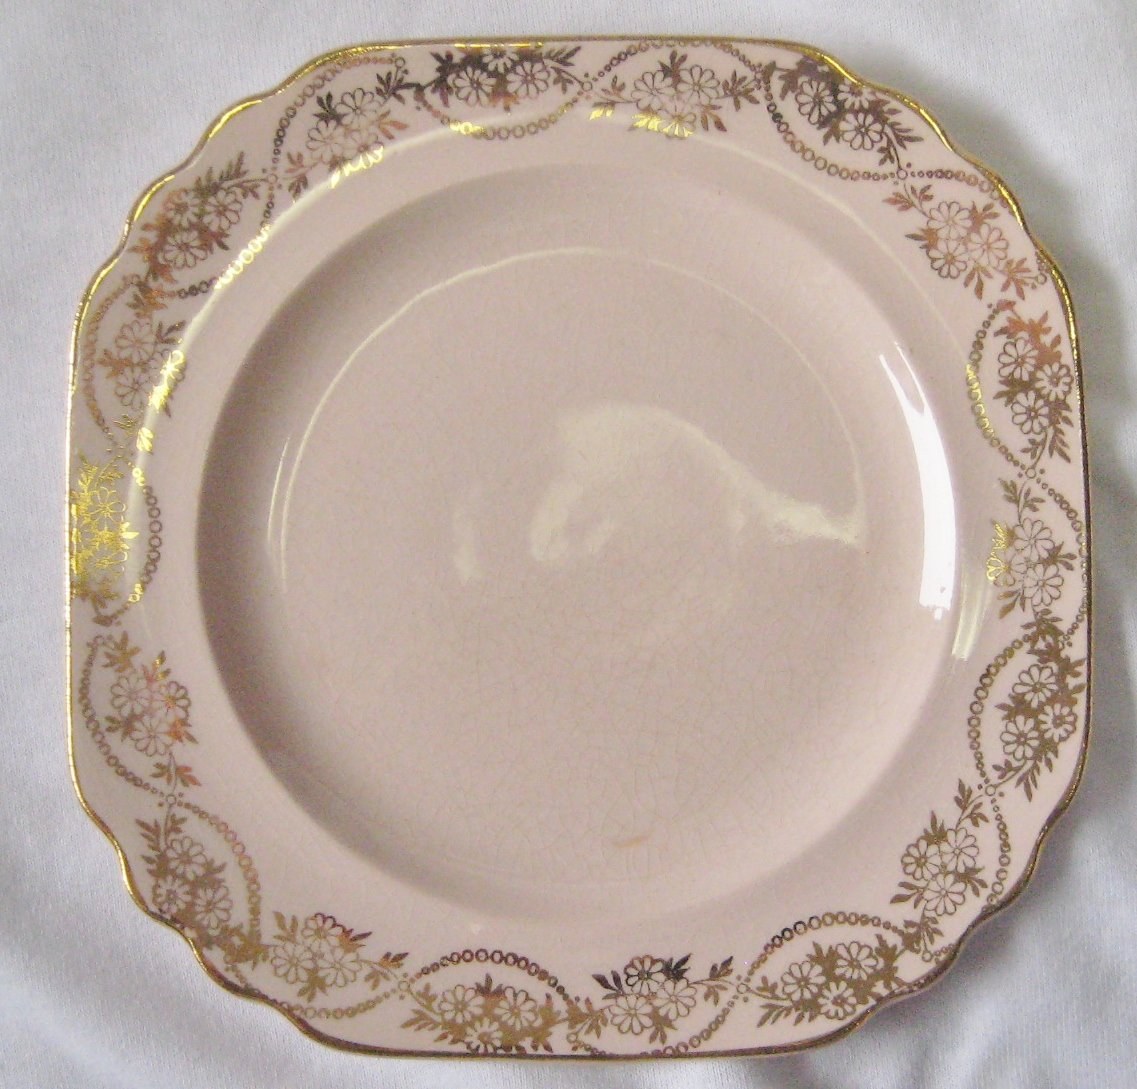 Vintage Gold Krest China Pink Dessert/Bread Plate Gold Trim